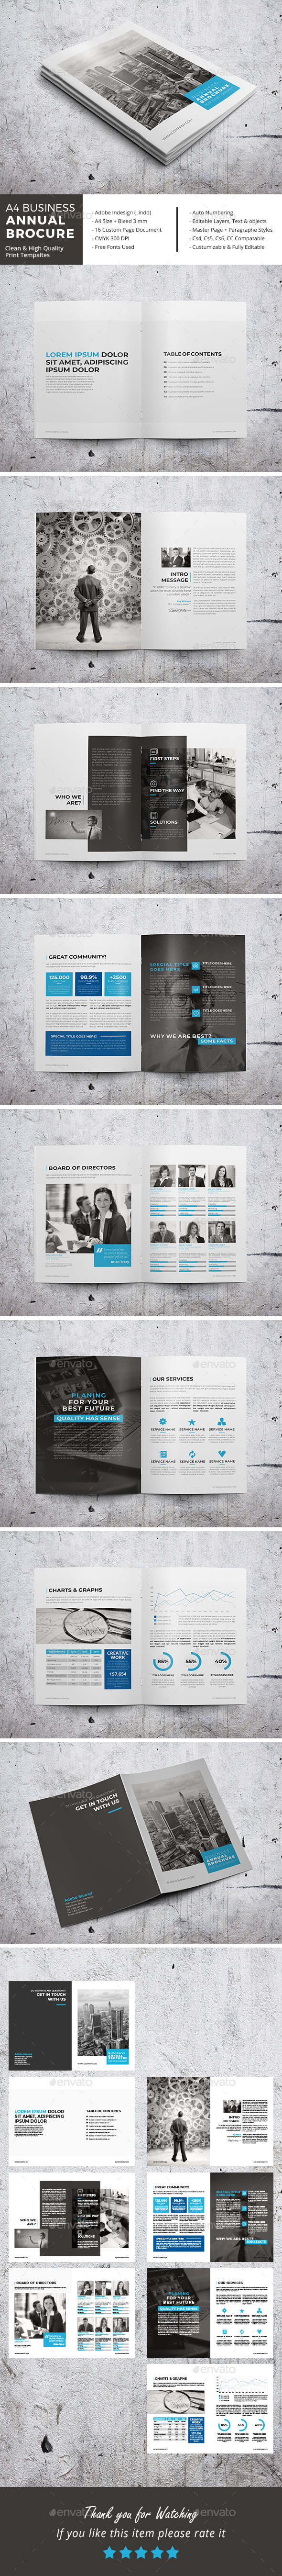 A4 Business Annual Brochure - Corporate Brochures